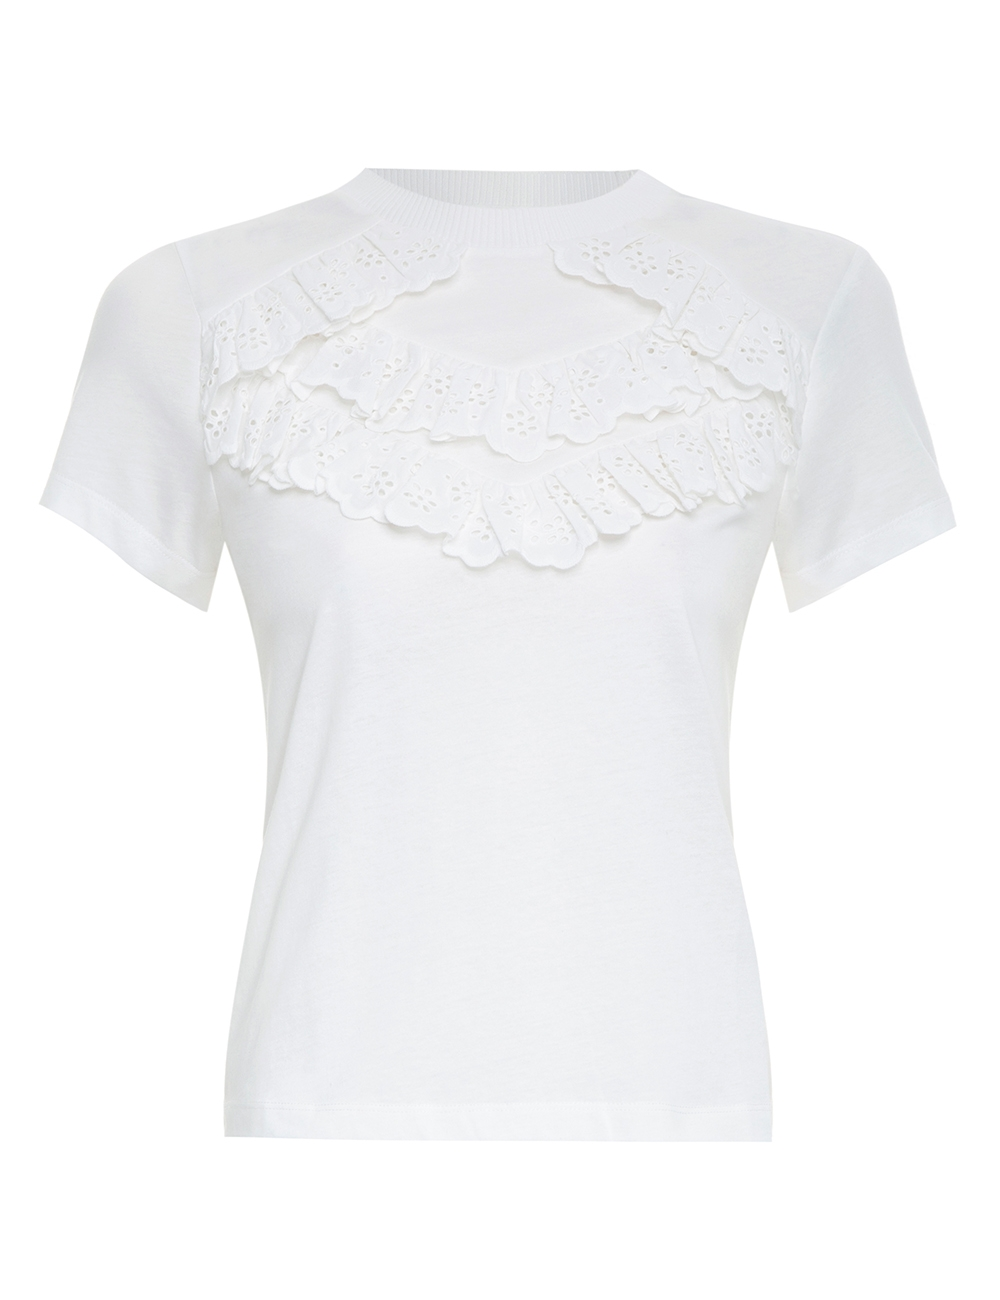 Empire Broderie Tee